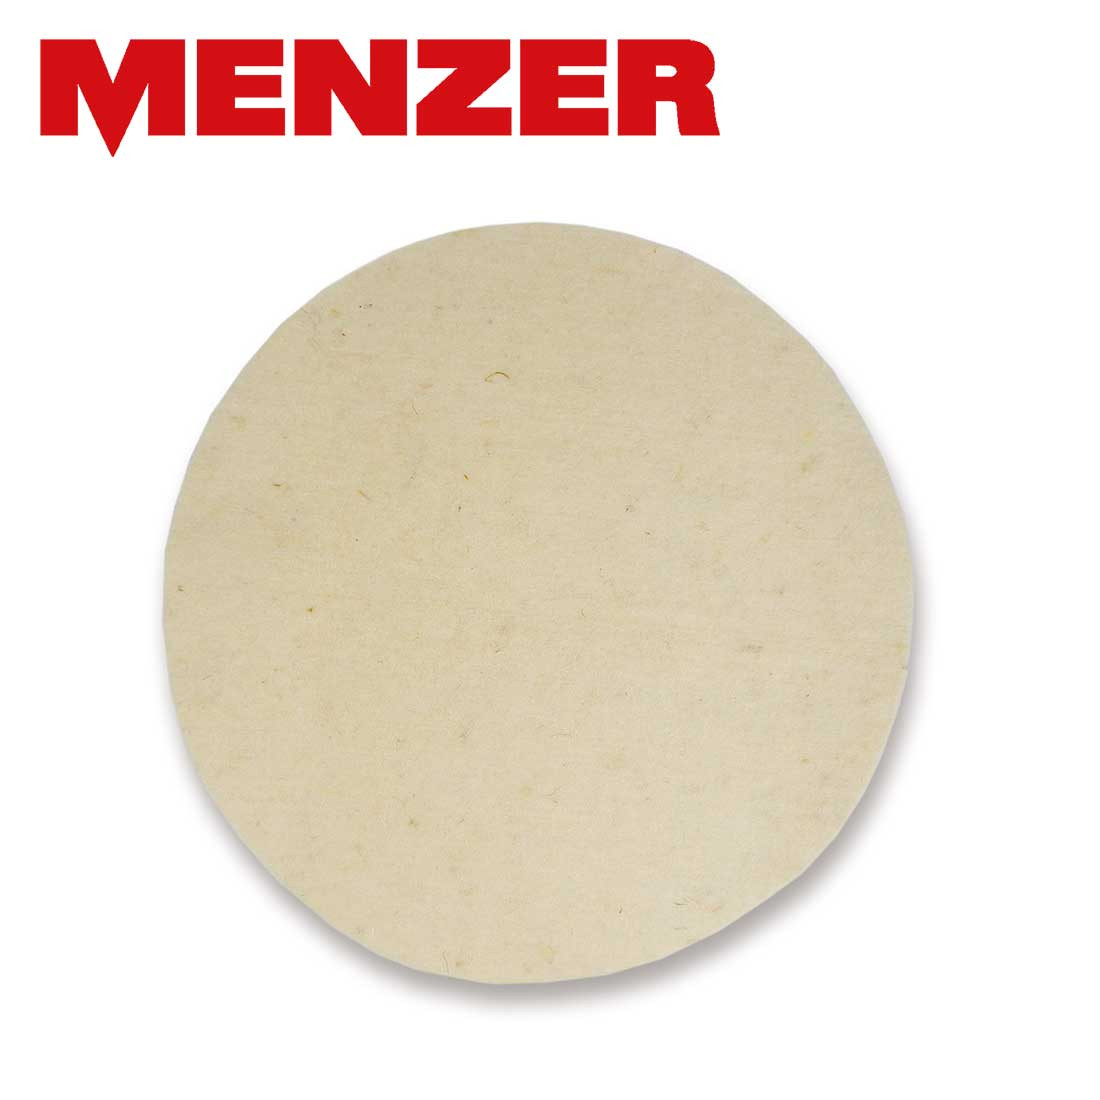 MENZER Wollpad (natur)